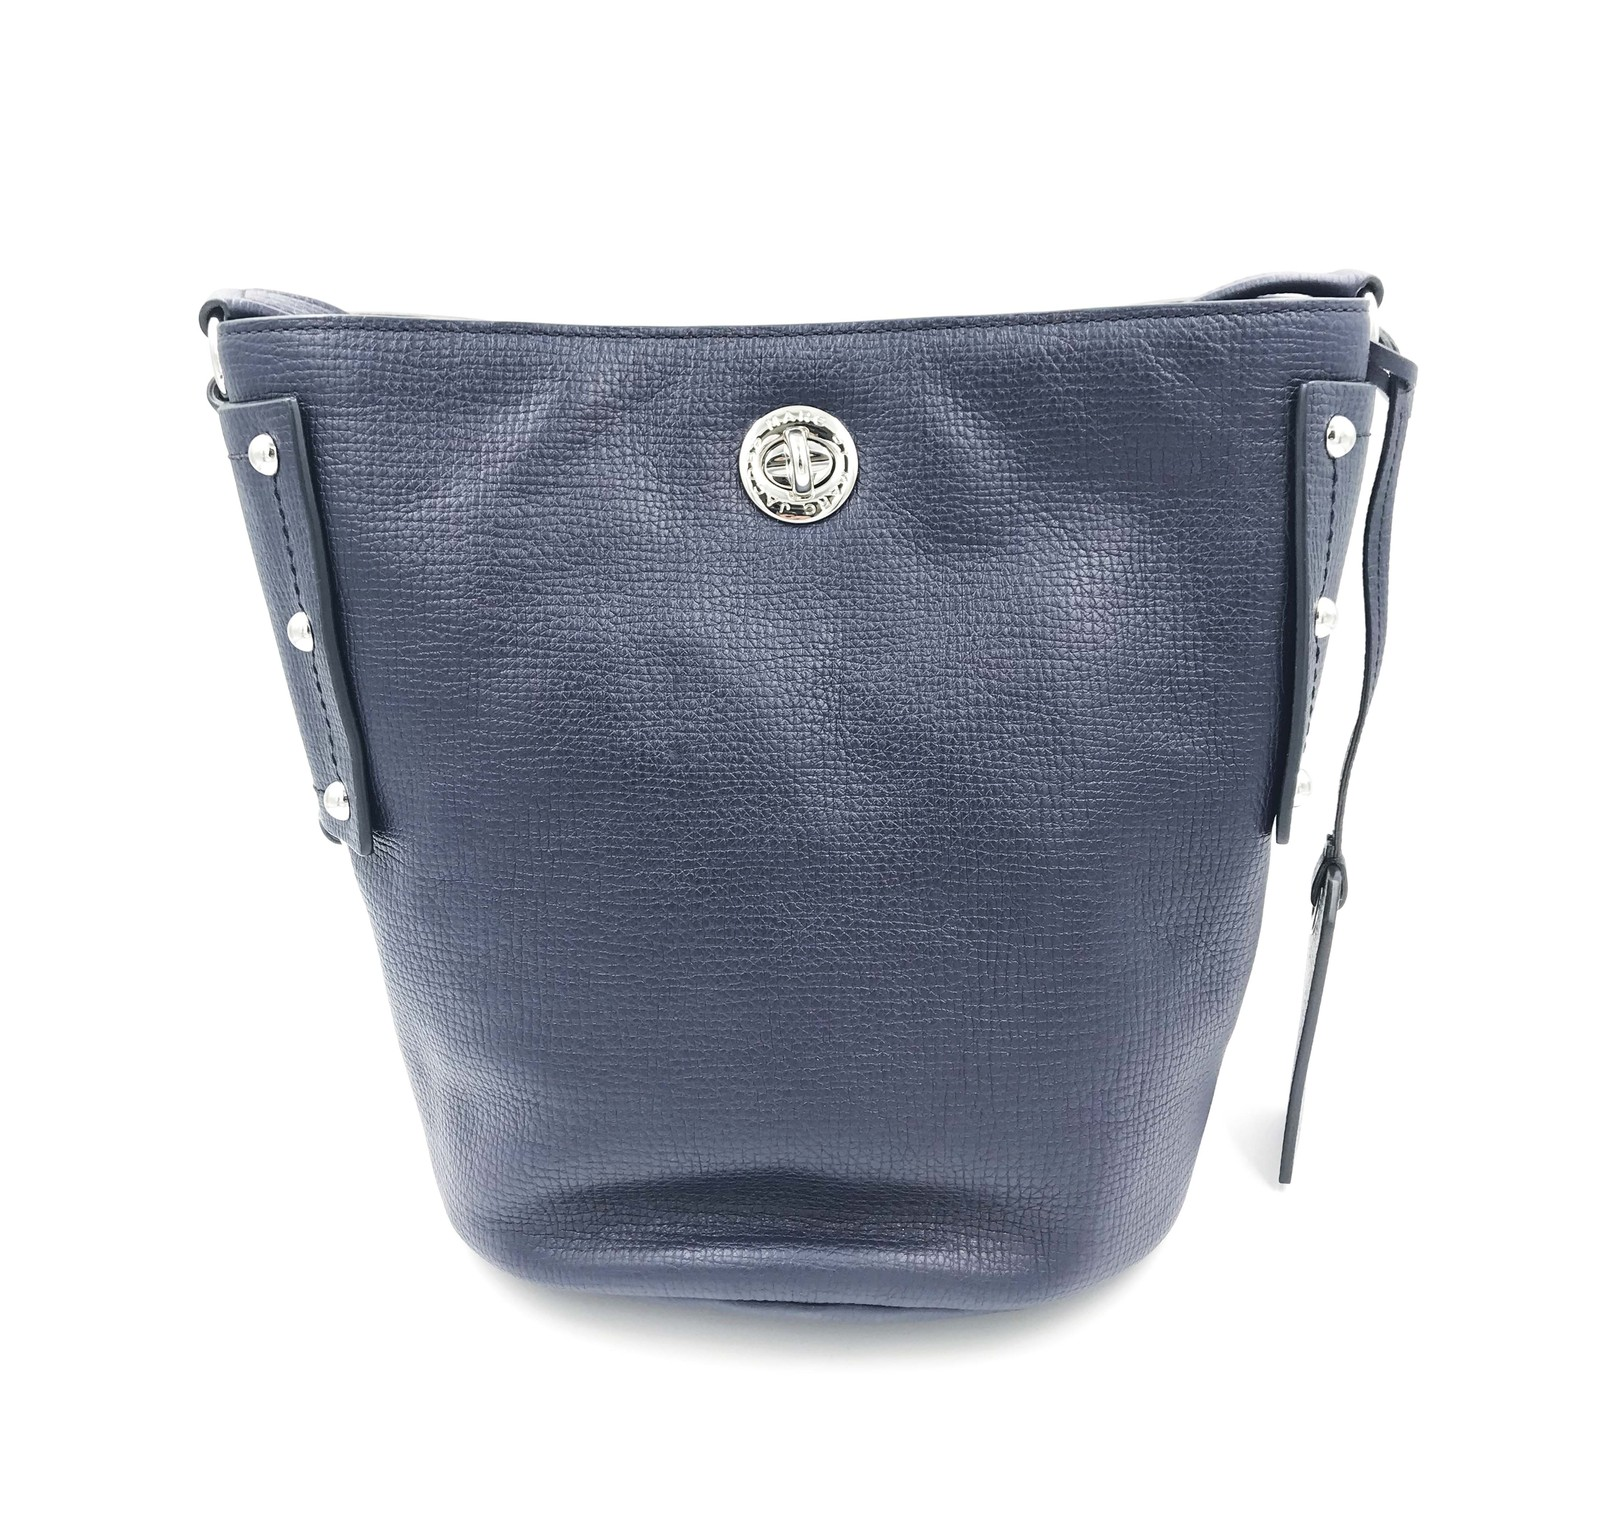 Primary image for Marc By Marc Jacobs M0007255-484 C Lock Bucket Navy Blue Crossbody Women's Bag